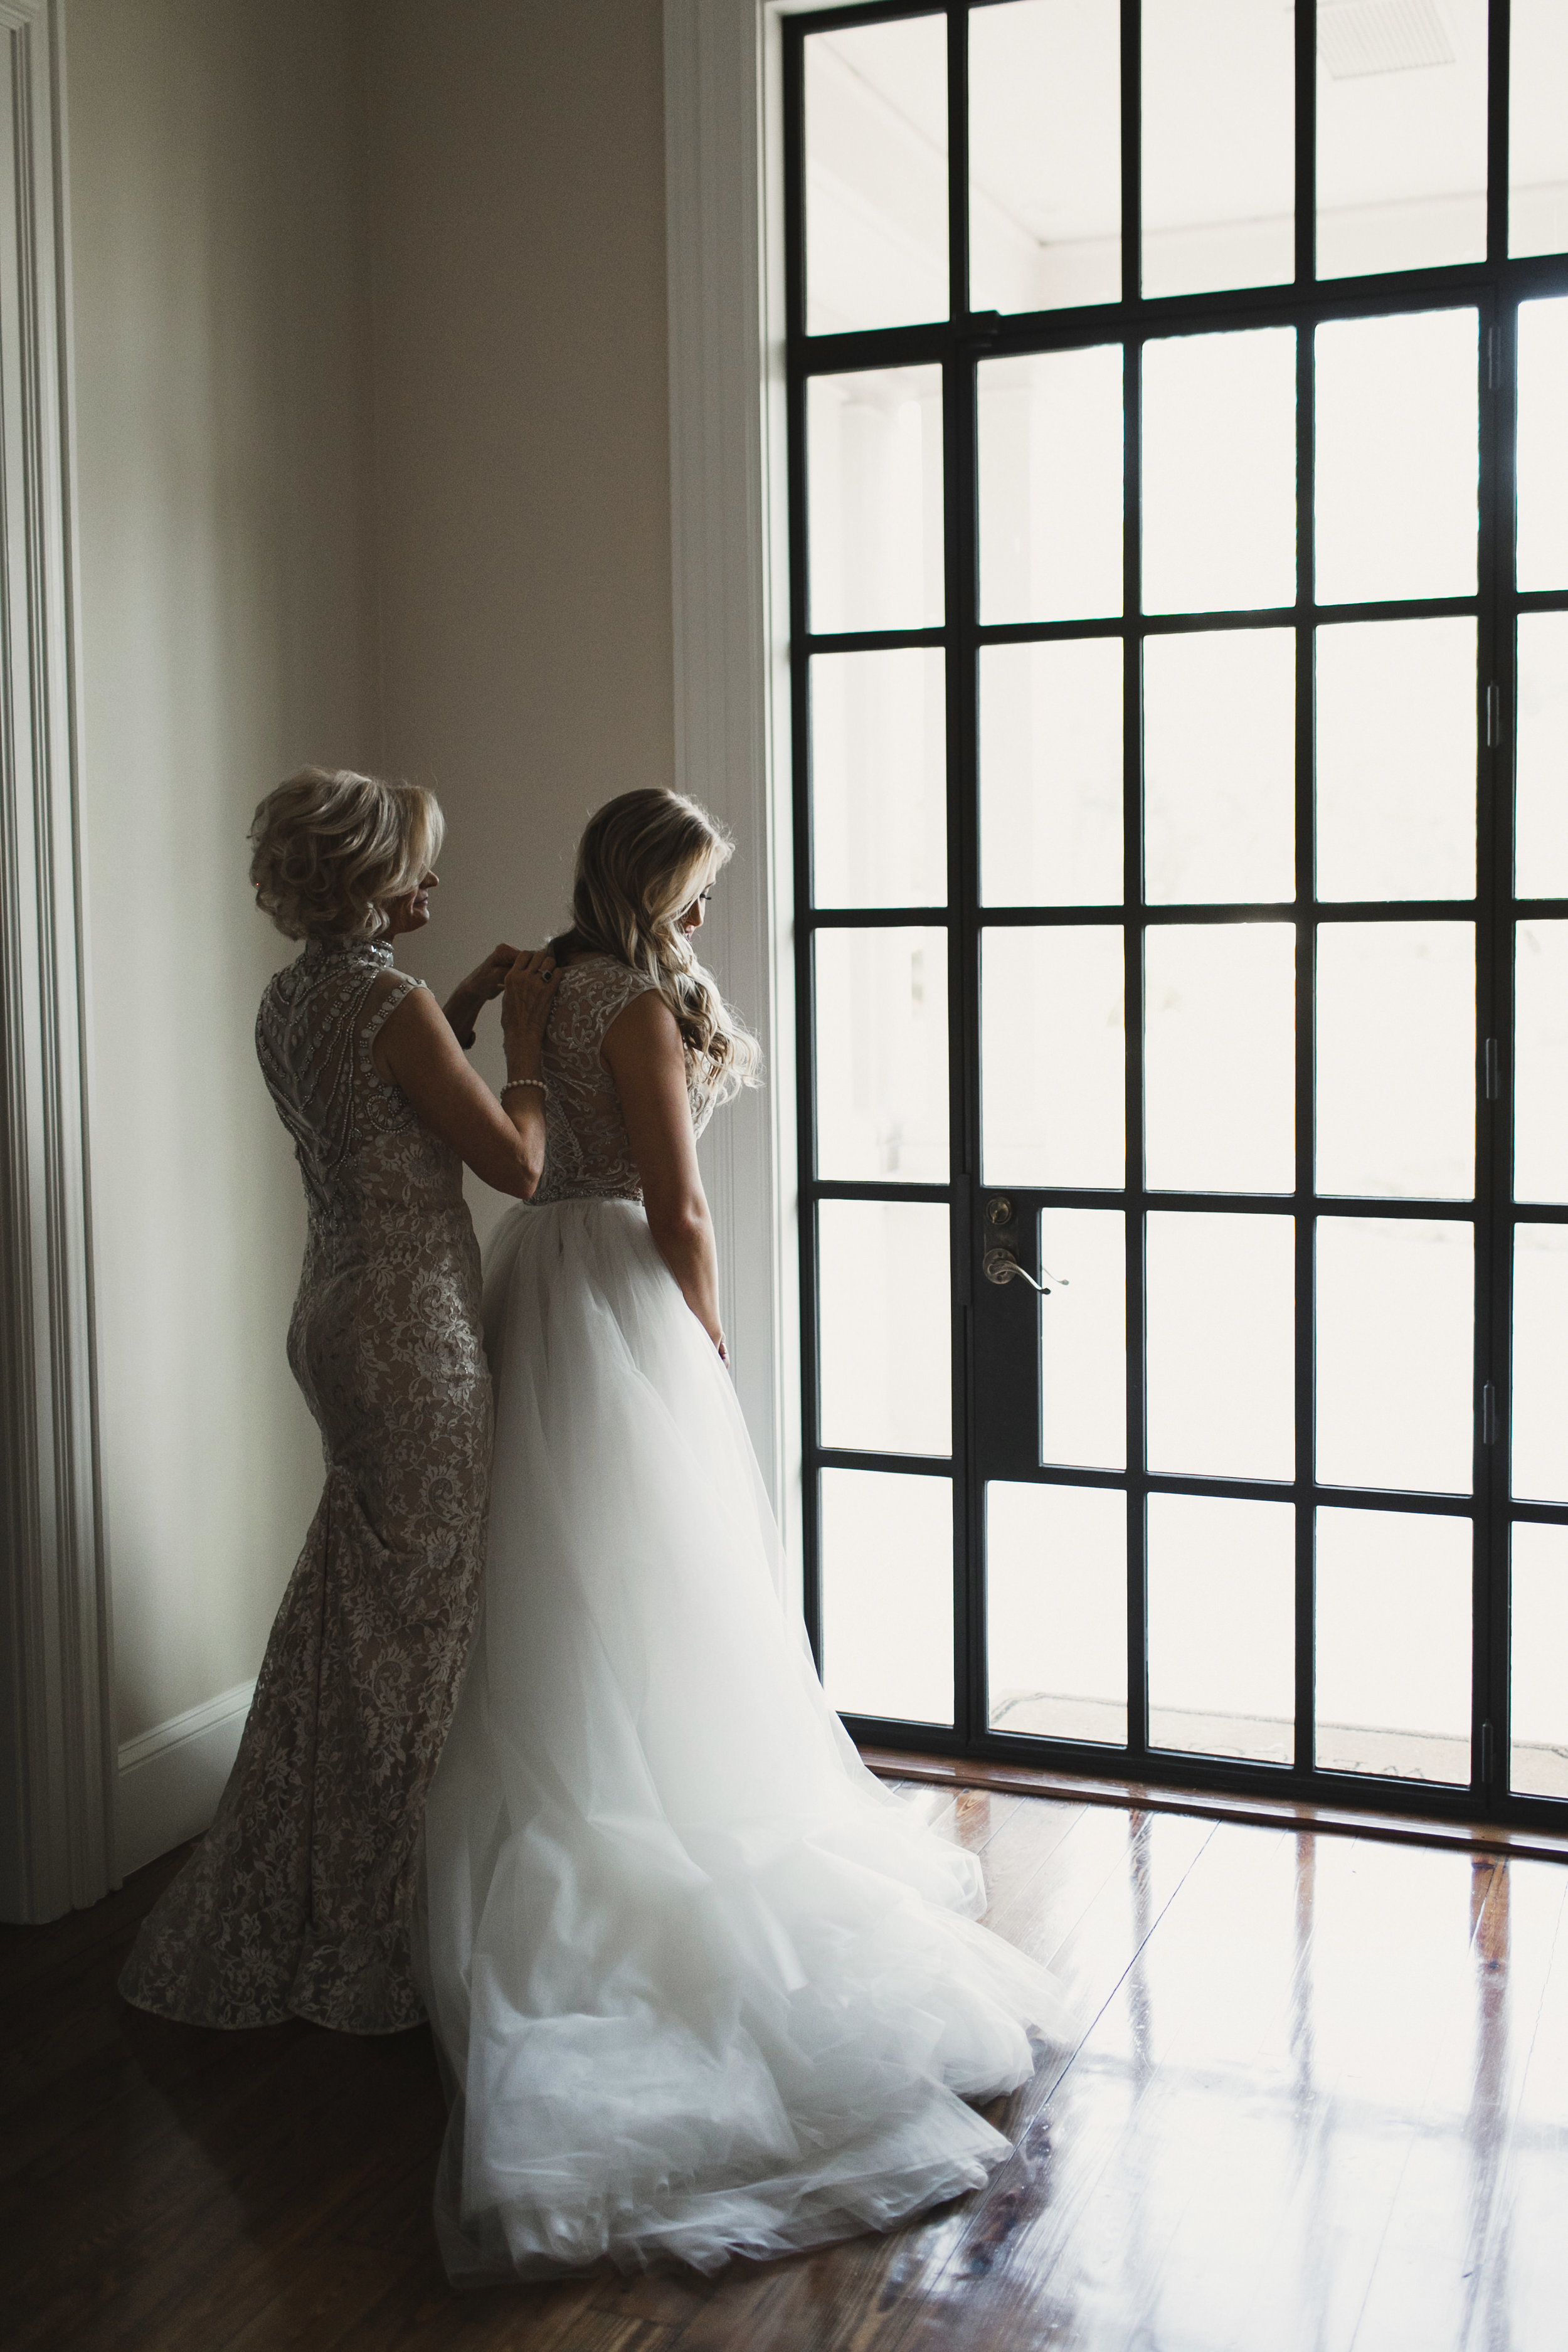 Southern Fete, Southern Wedding, Mother of the Bride, Kimbrali Photography, Salon Elle Rae